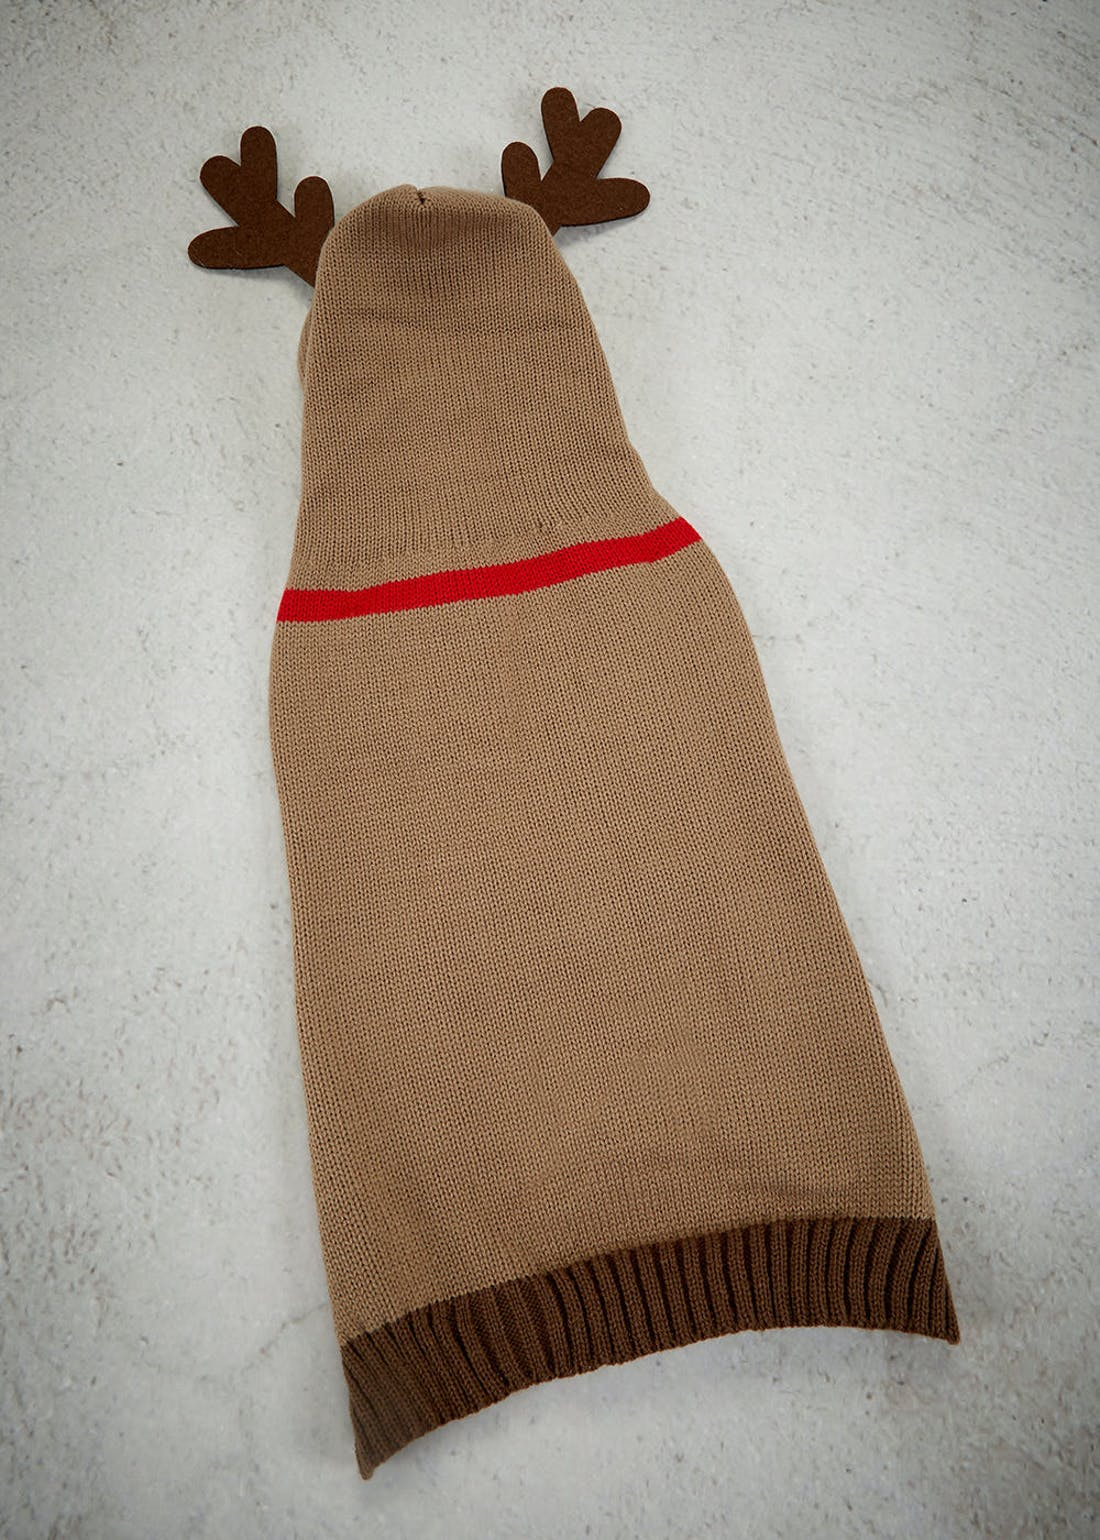 Knitted Reindeer Dog Outfit